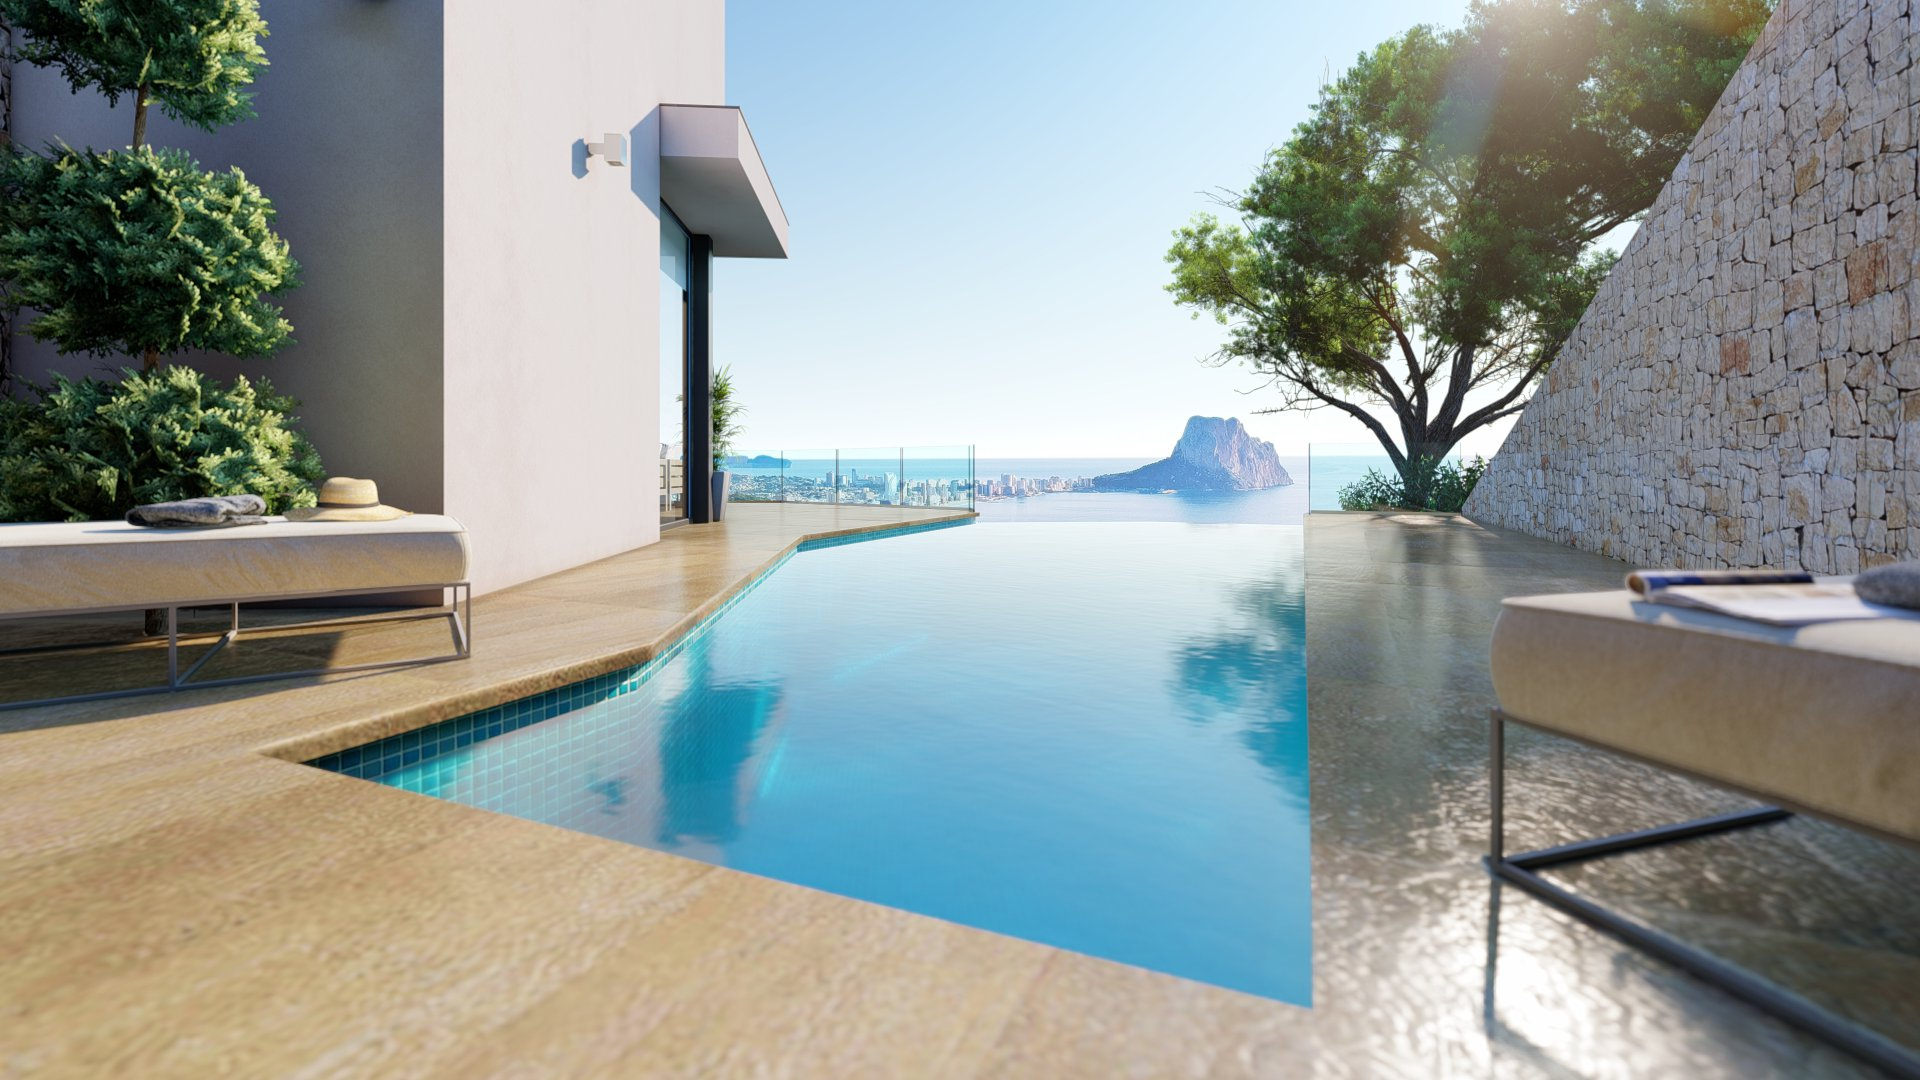 New built luxury villa in Calpe